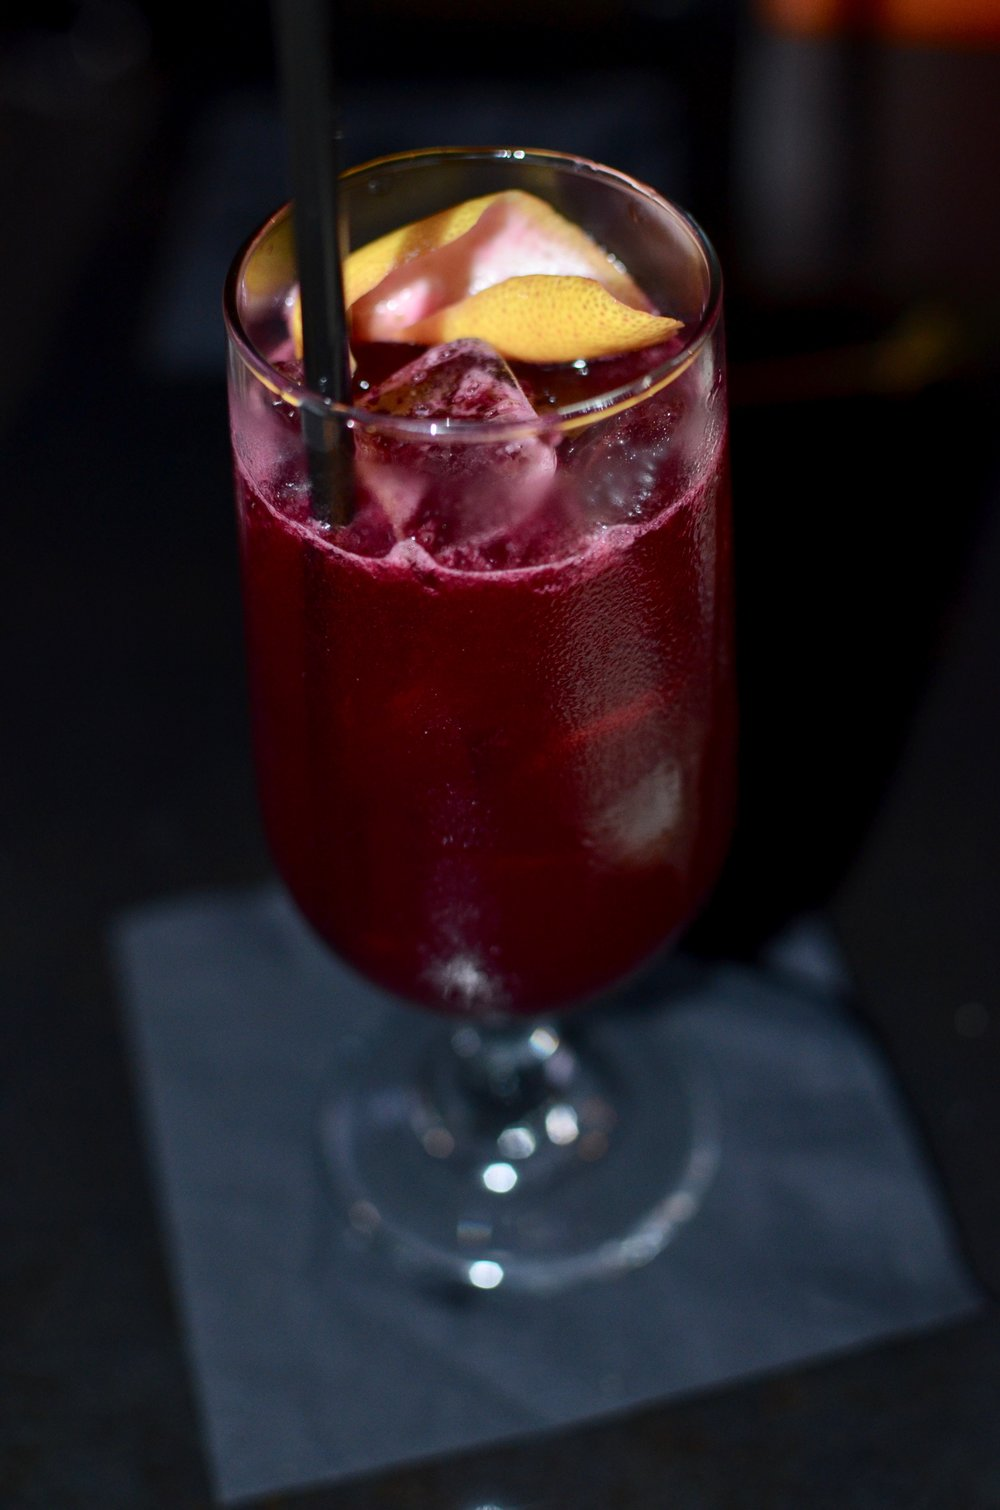 give me the beet - ketel one vodka, aperol, beet, ginger syrup, and lemon